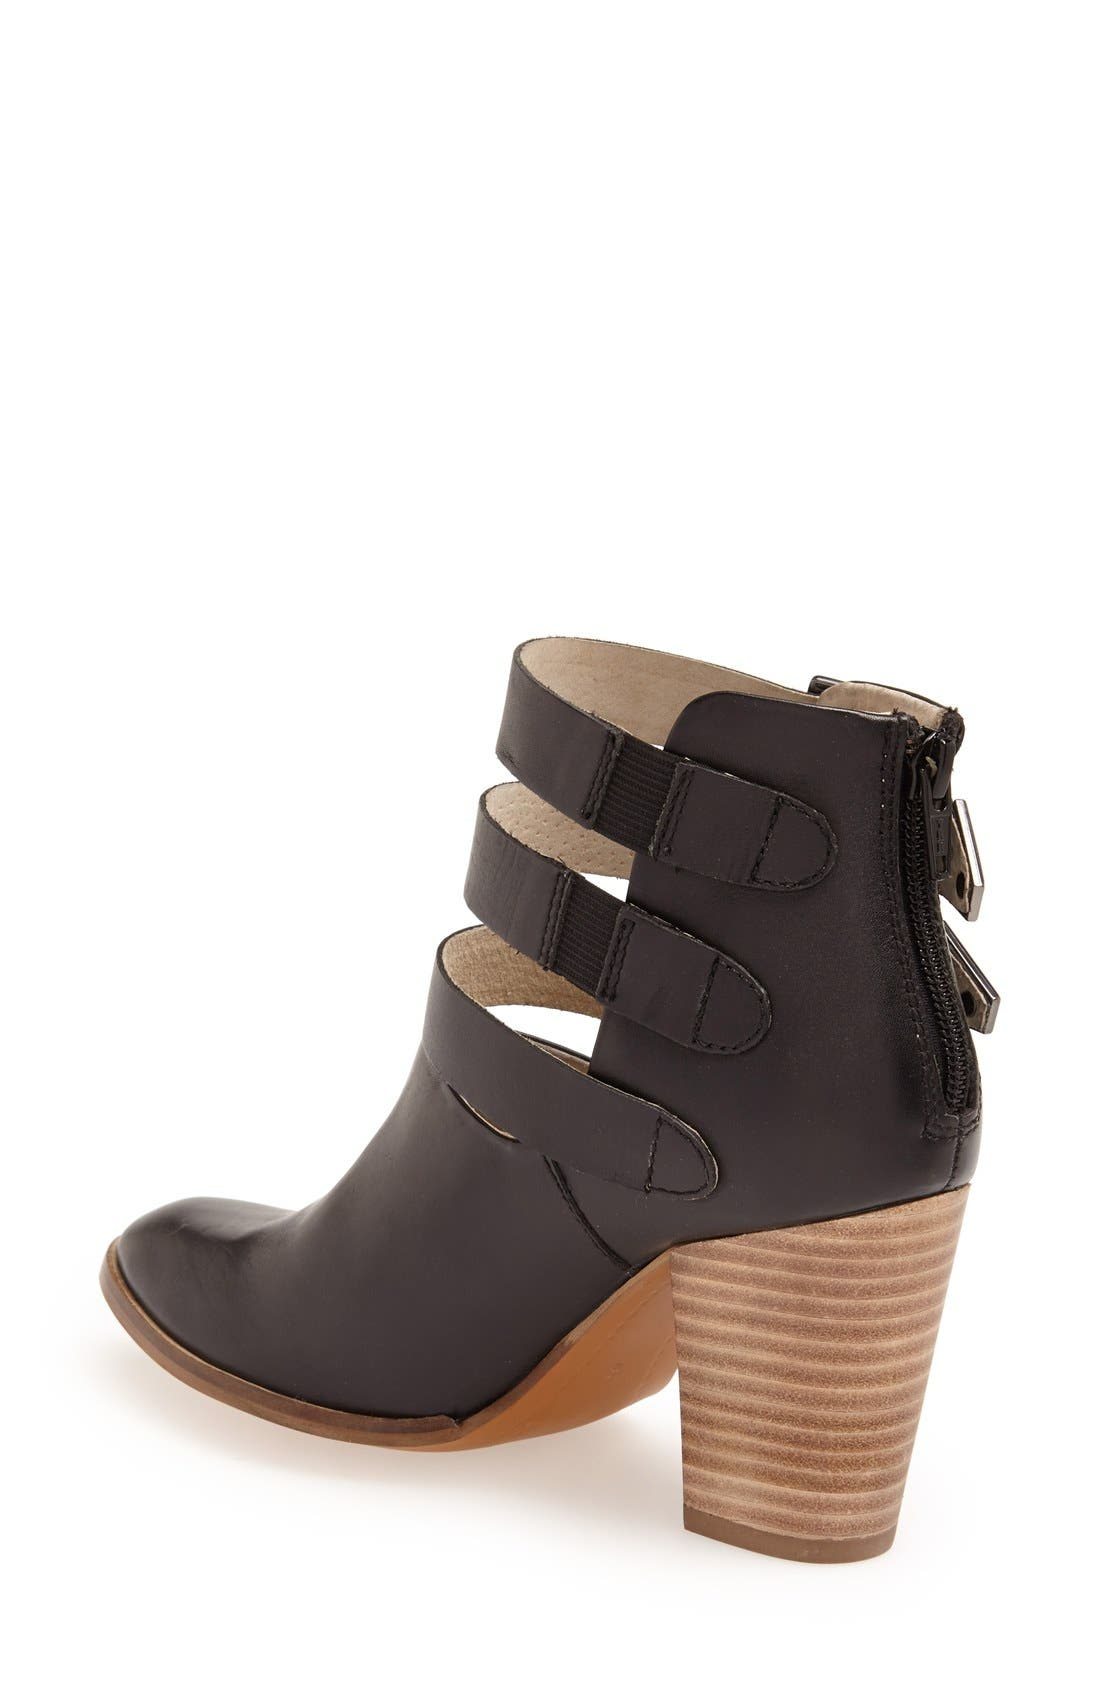 'Haywire' Bootie,                             Alternate thumbnail 4, color,                             001